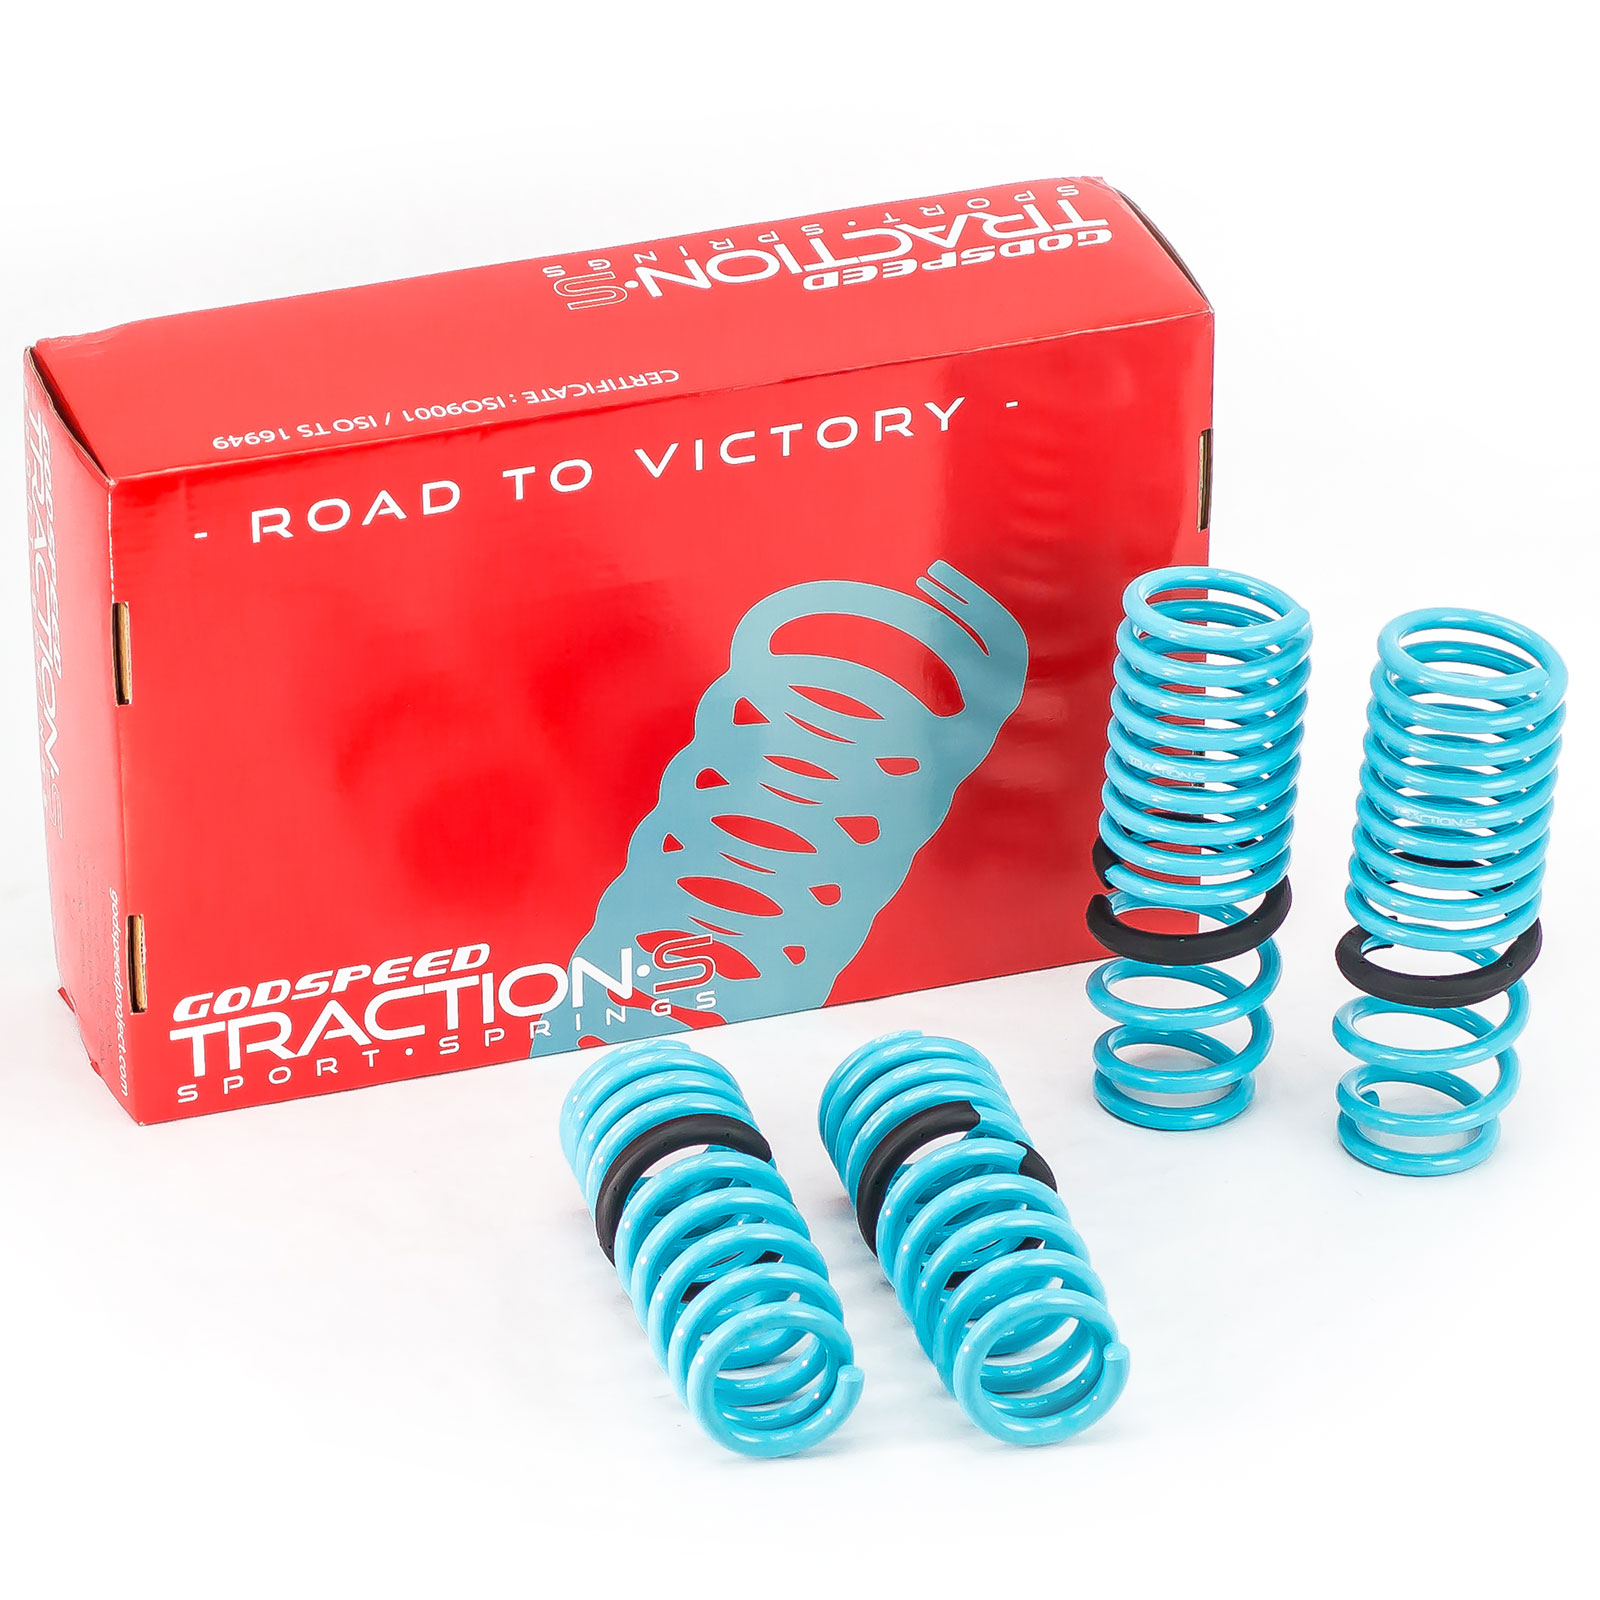 Godspeed Traction-S Lowering Springs For Acura RSX 2005